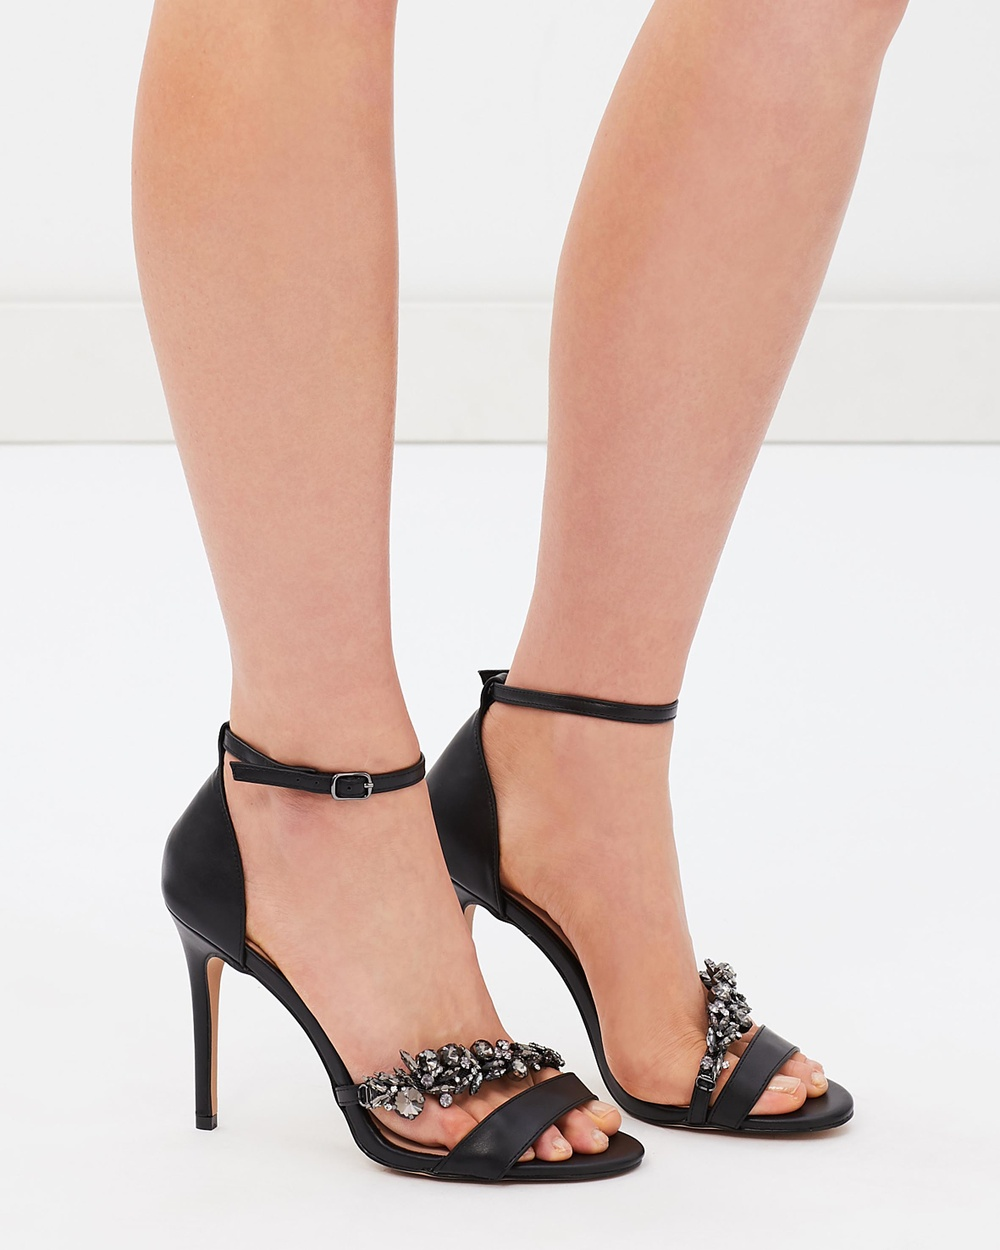 ALDO Petruro Heels Black Synthetic Petruro